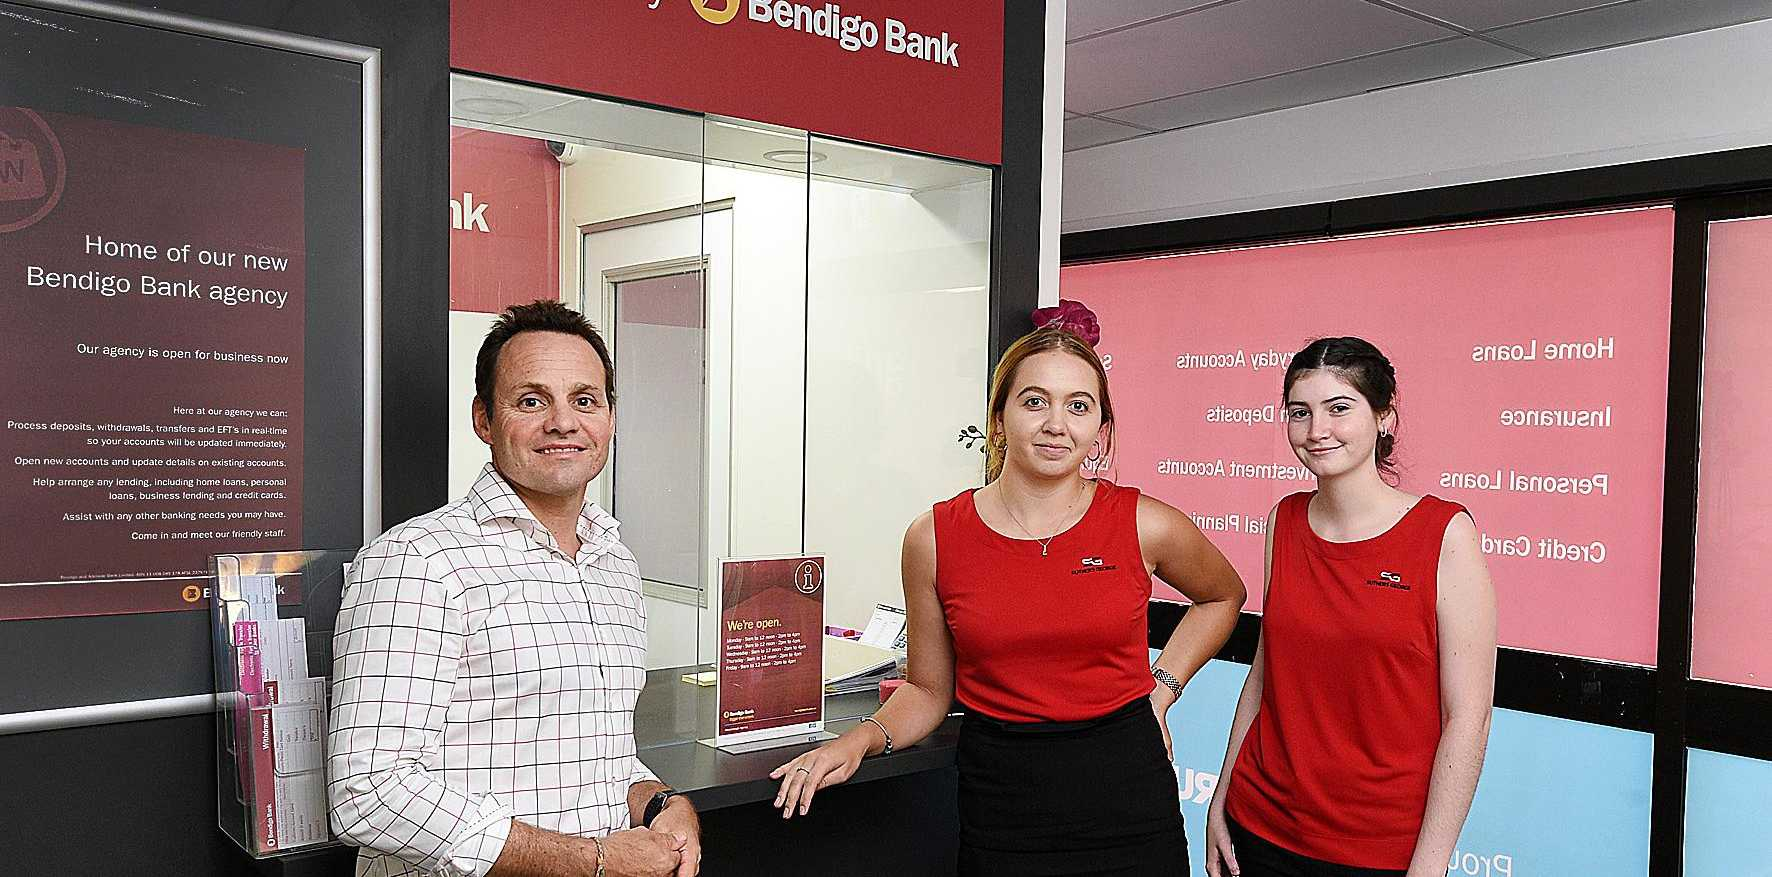 NEW AGENCY: Bendigo Bank has opened inside Suthers George in Maryborough. Pictured are Travis George, Natasha Donnelly and Adeline Russell.